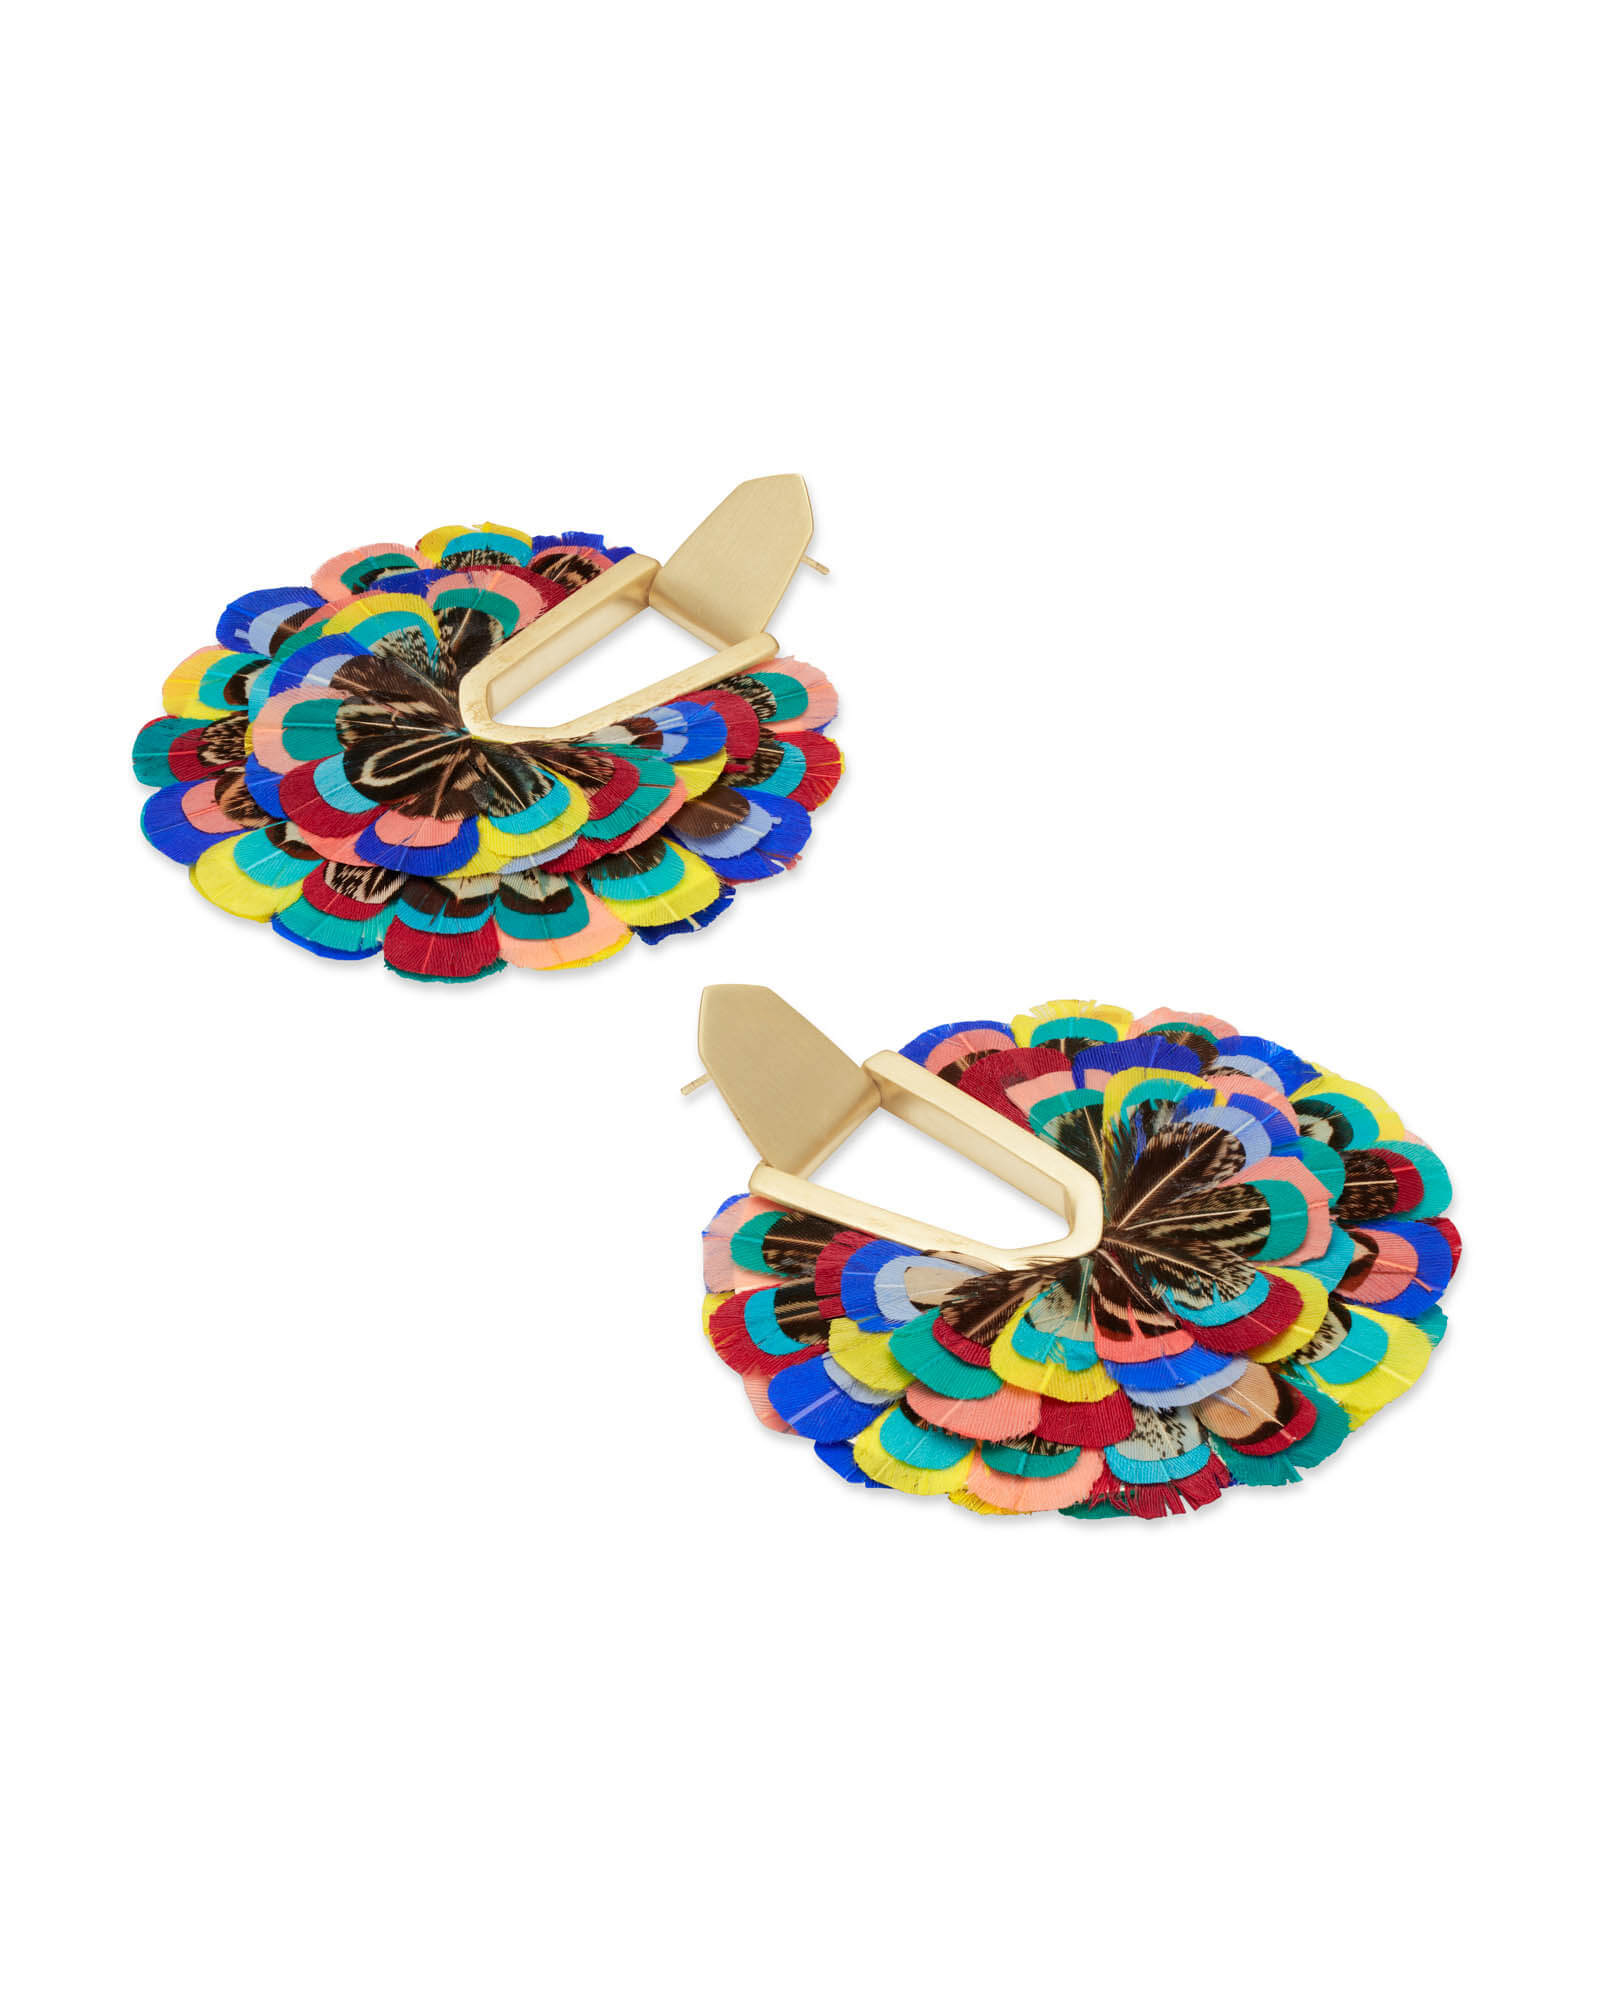 Diane Gold Statement Earrings in Multi Color Feathers